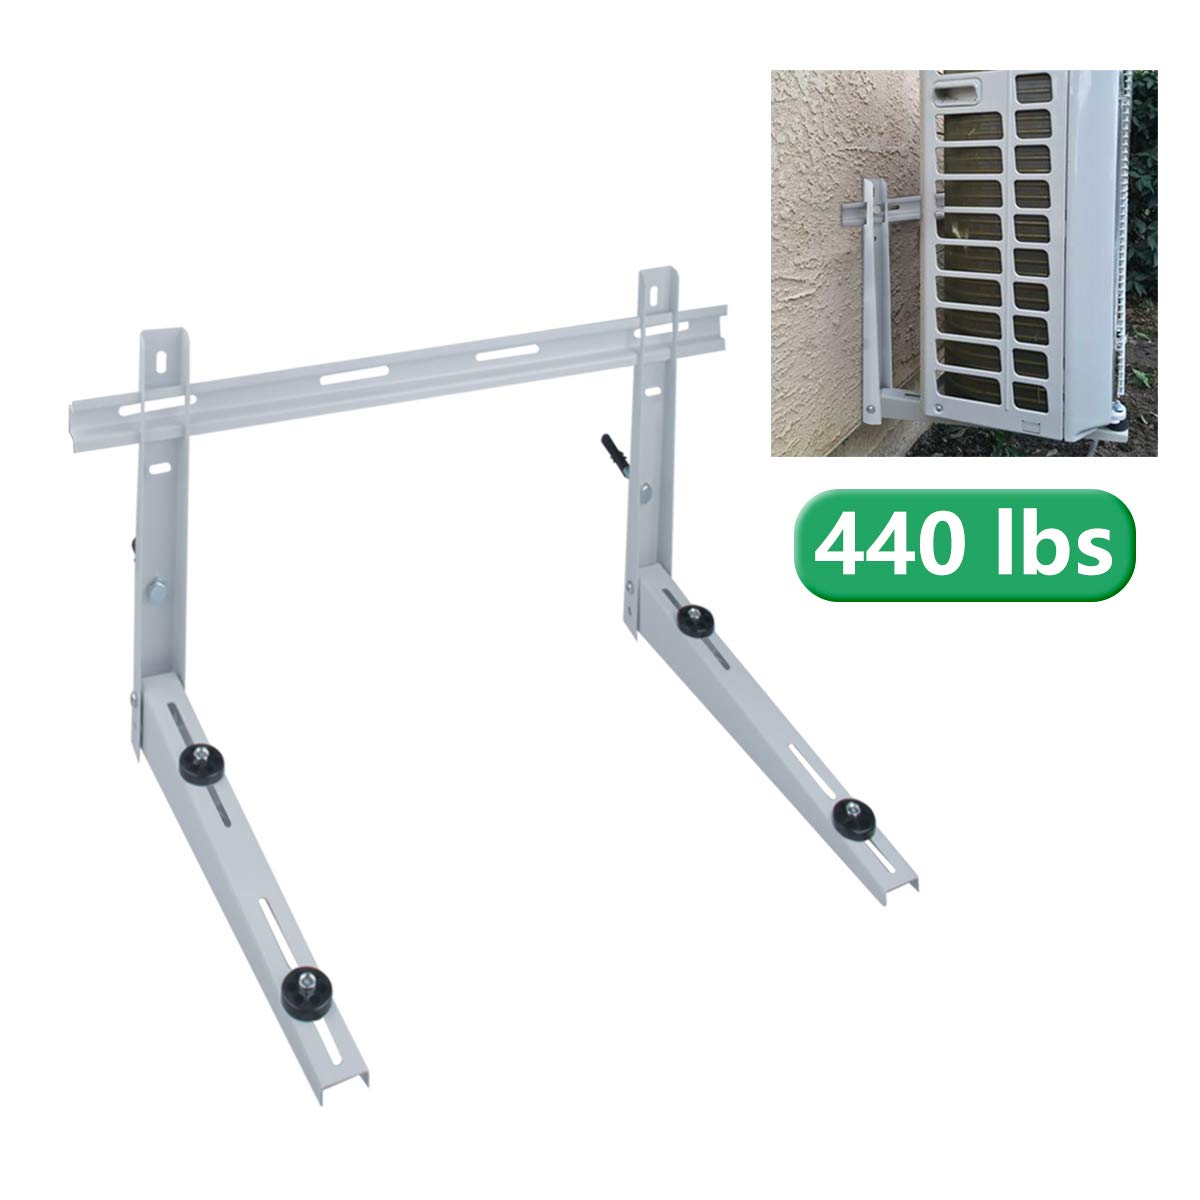 Forestchill Wall Mount Bracket with Cross Bar, fits Mini Split Ductless Outdoor Unit Air Conditioner Condensing Unit Heat Pump System Condenser, Universal, Support up to 440lbs, 18000-36000BTU by Forestchill